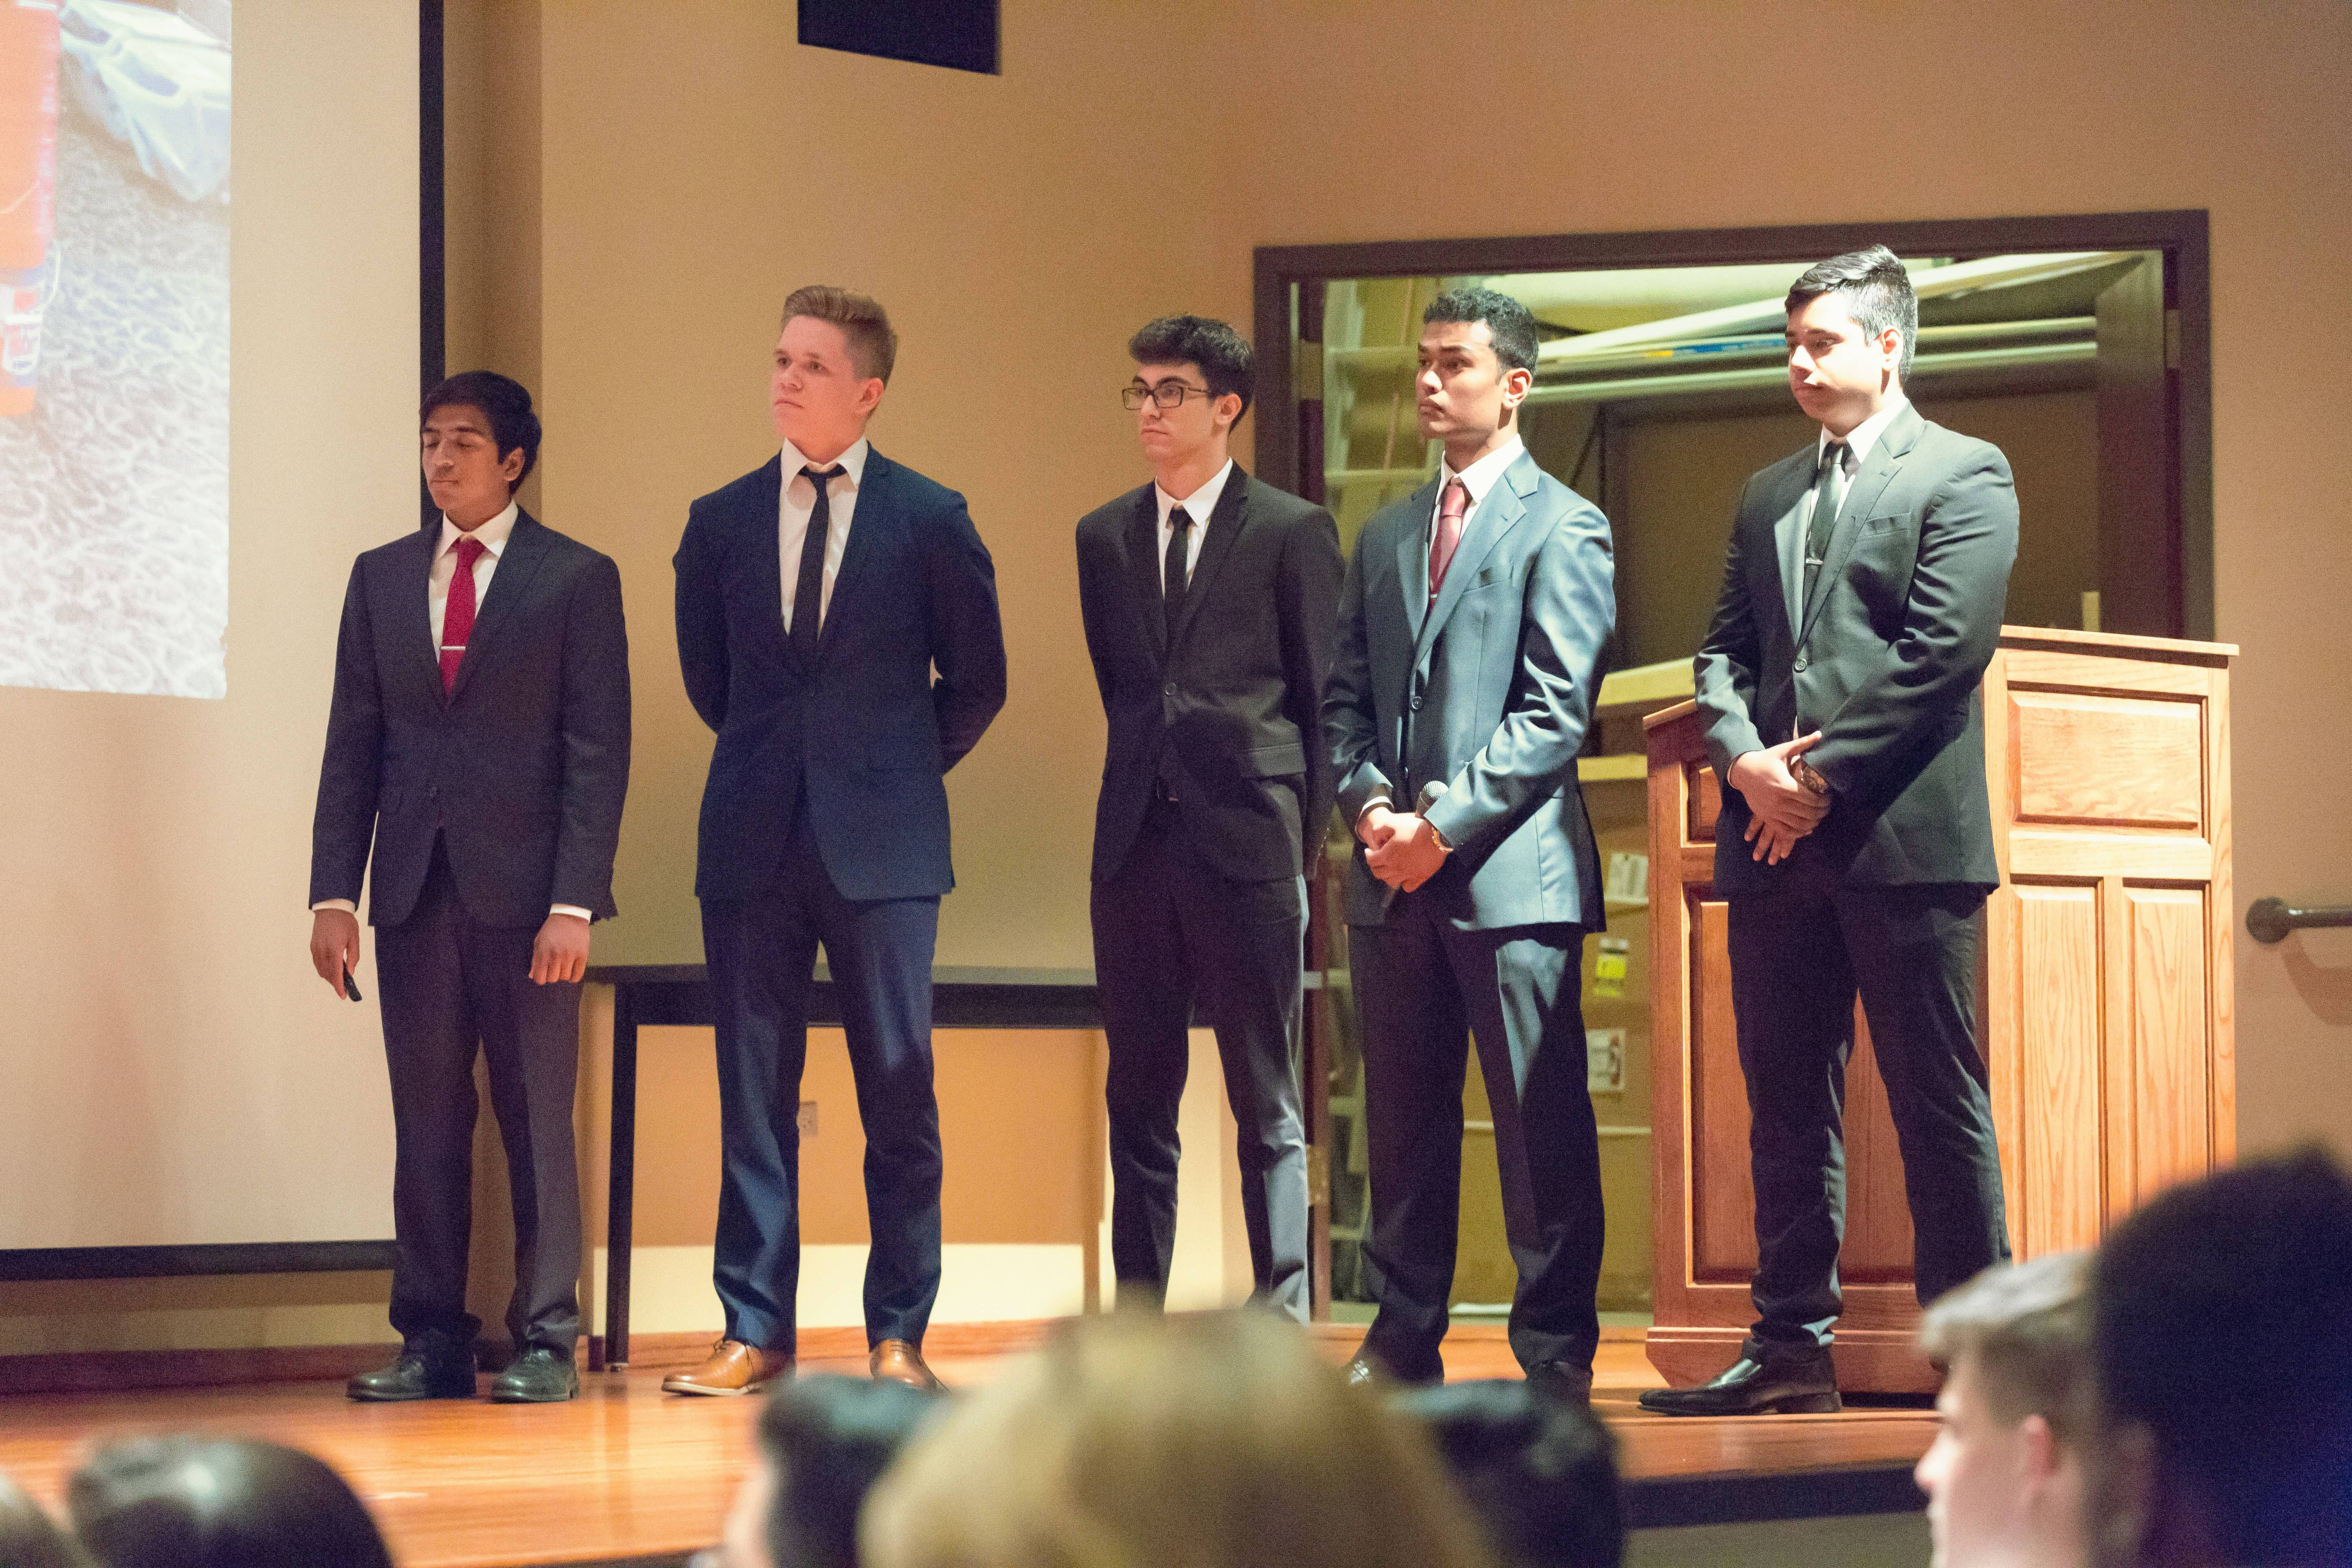 Conant High School students Akash Moozhayil, Kunal Mahajan, Stoil Ionov, Rohan Antony and Patryk Barszczuk won $20,000 in funding for their company, Green Dirt, after a pitch to a business panel last May during the District 211 Business INCubatoredu Pitch Night. The team since has won another $7,500 in funding in a national competition held this summer in Chicago.